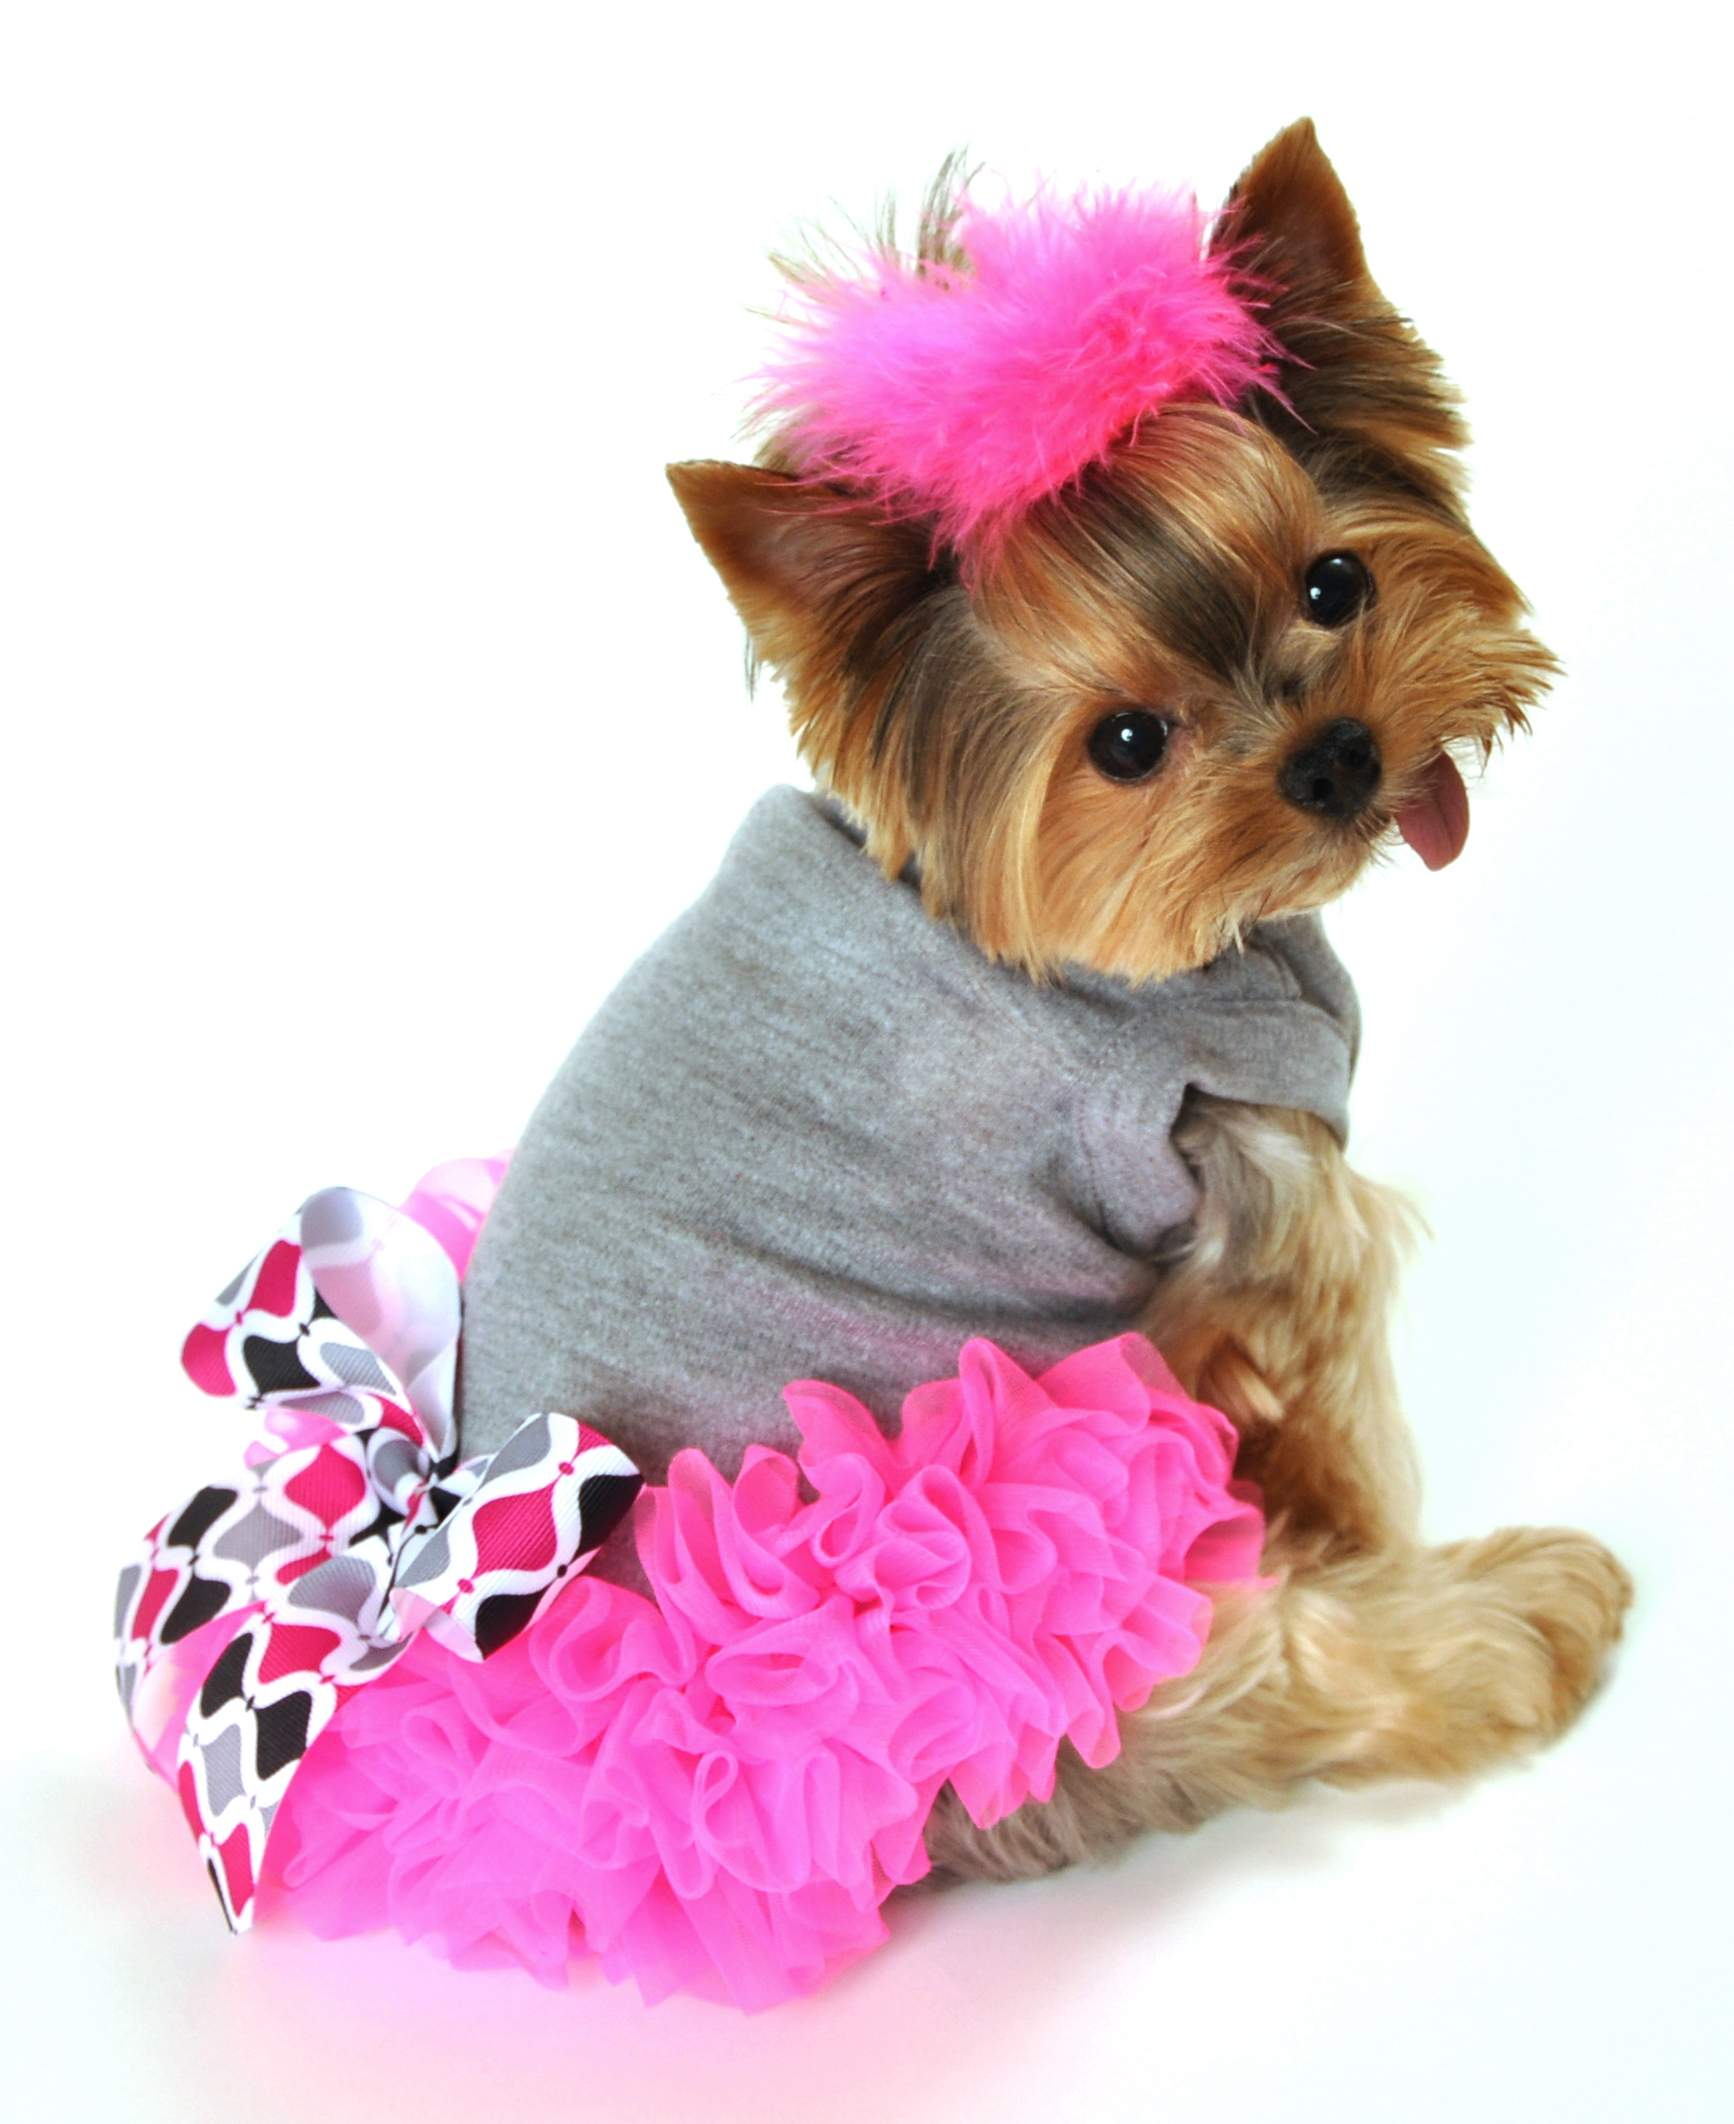 Puppy Dresses photo - 2